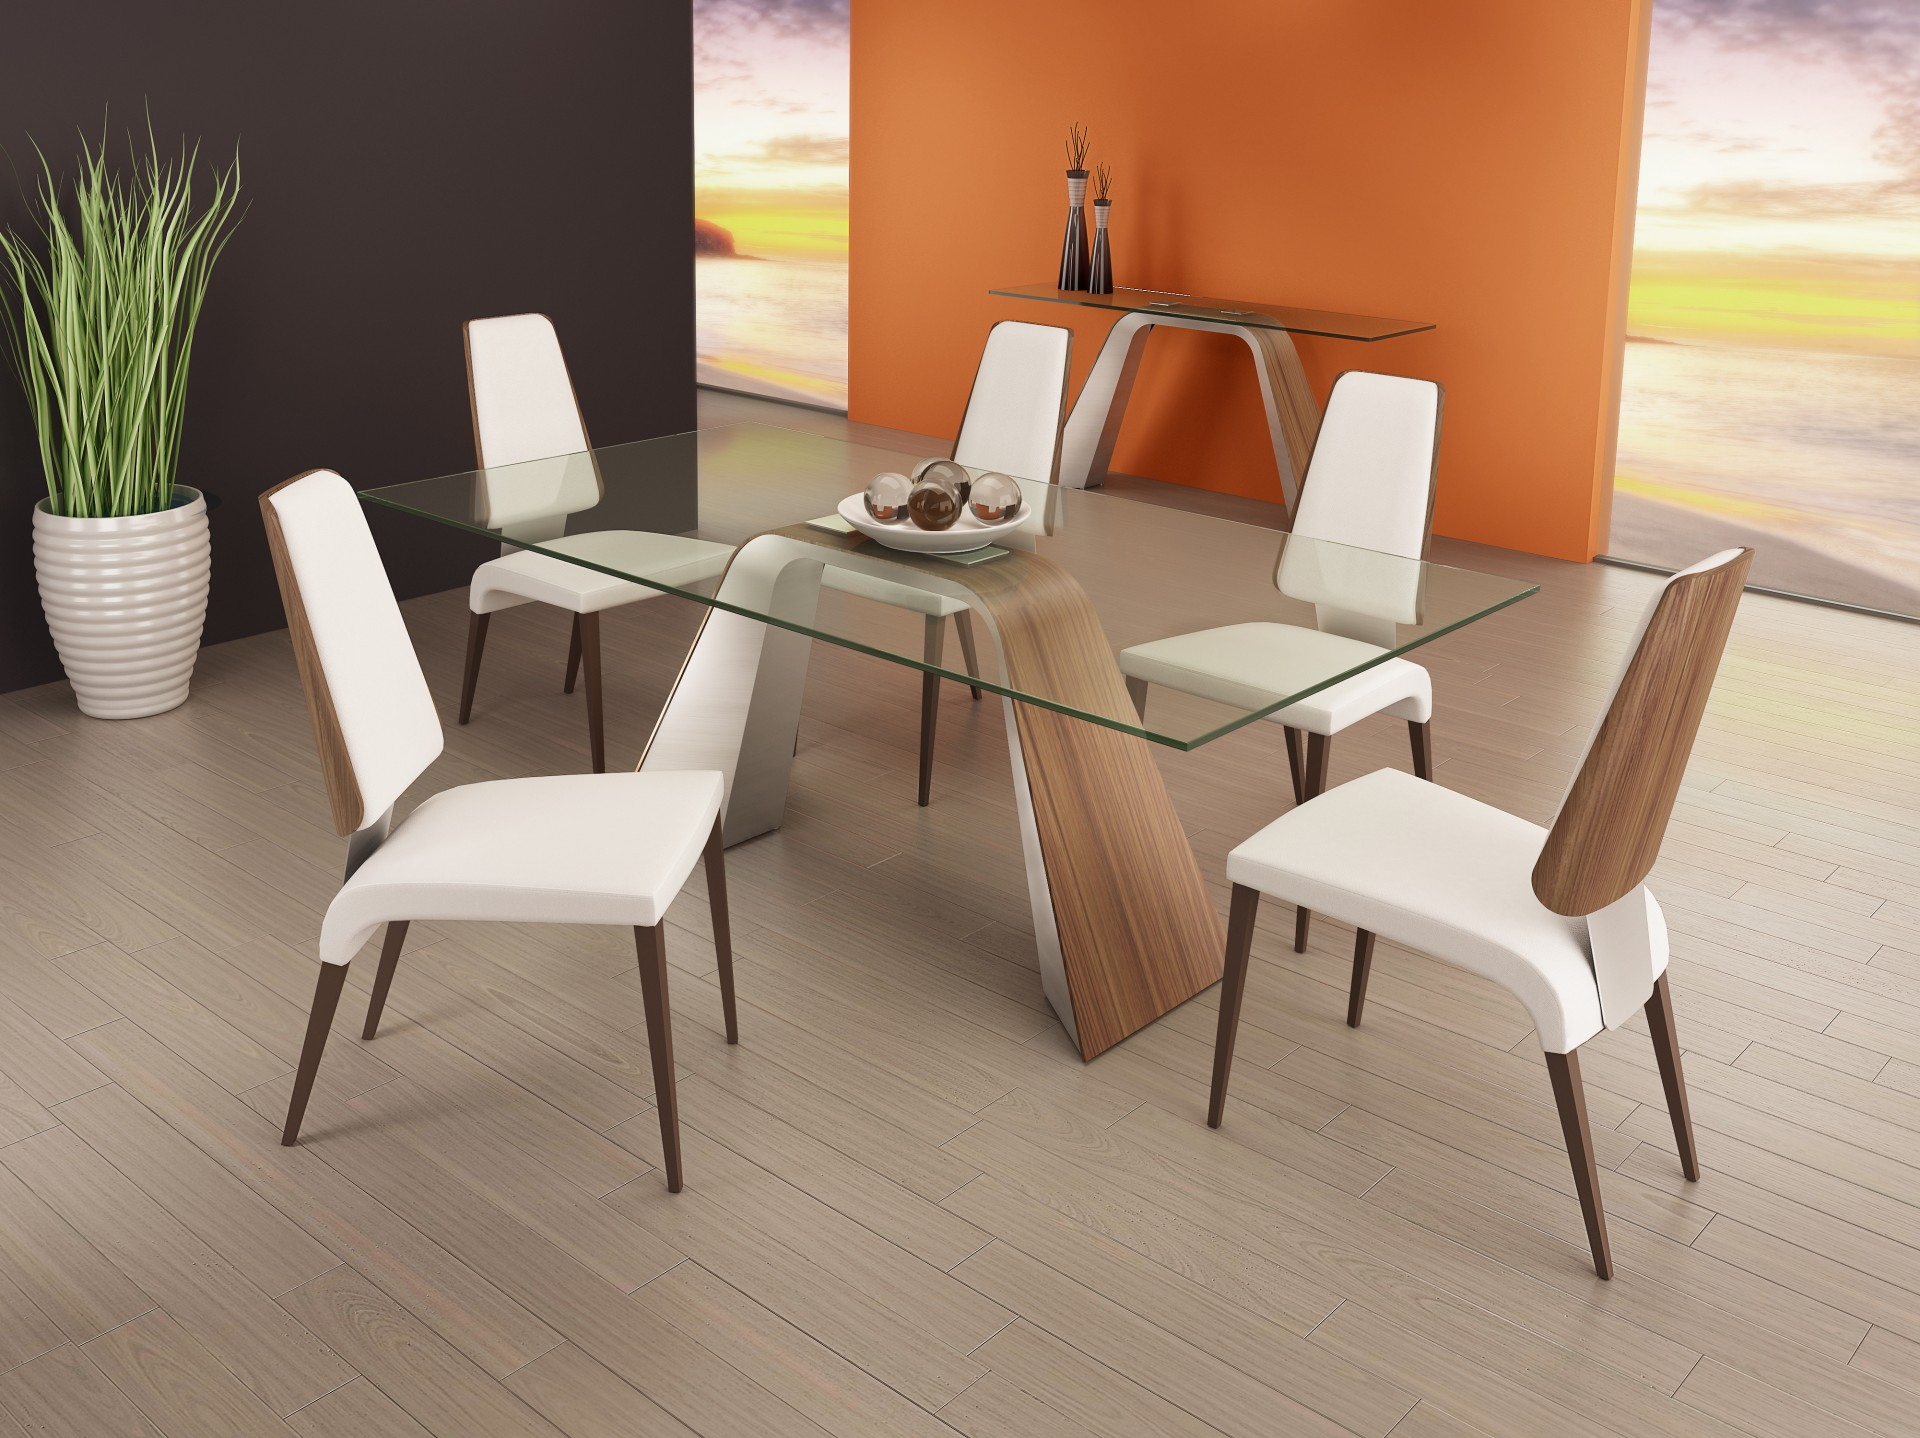 Dining room furniture las vegas vizion furniture 702 365 for Dining room tables las vegas